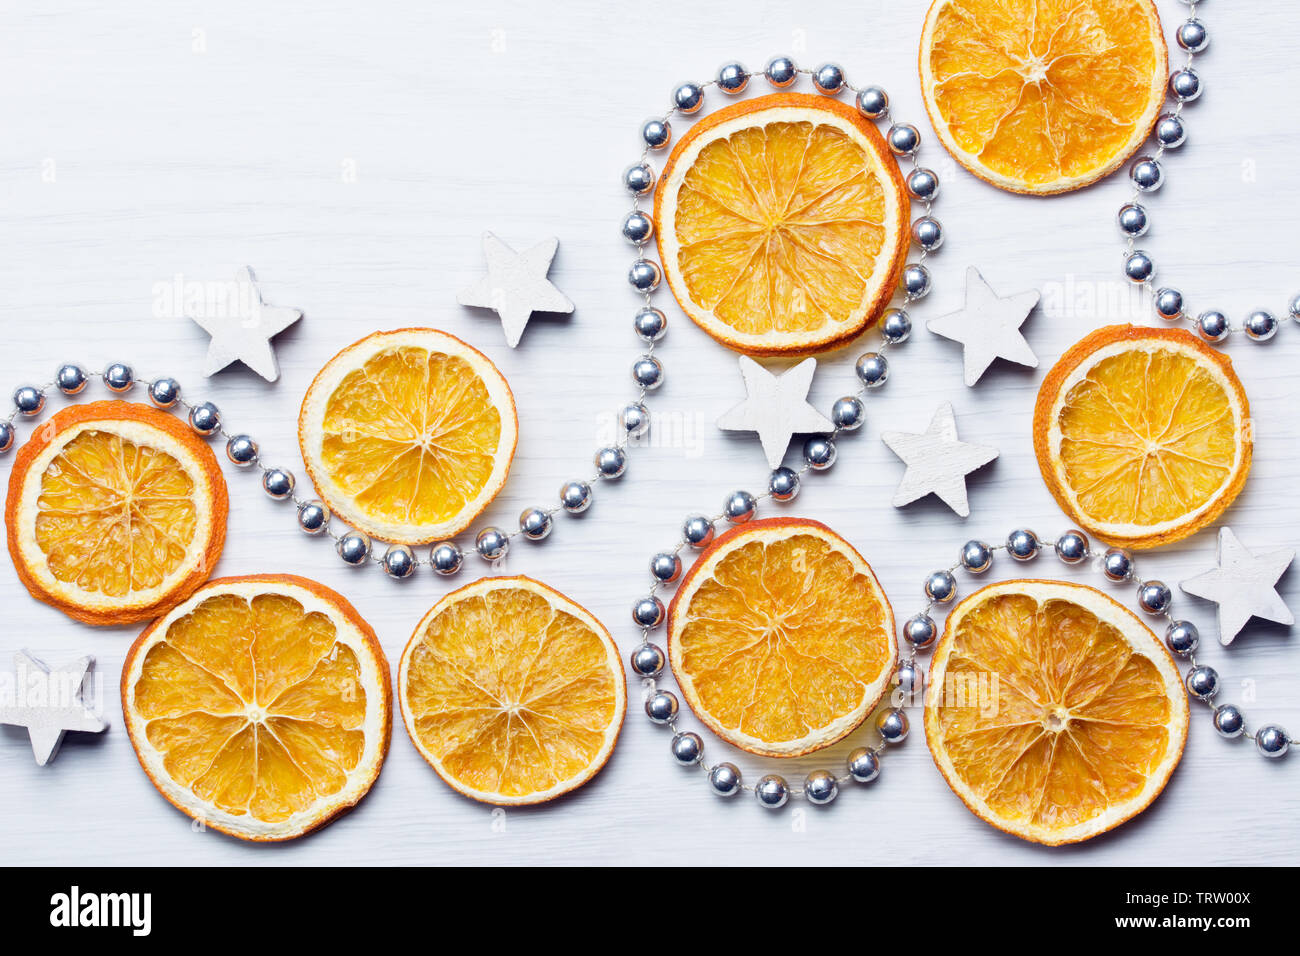 Christmas composition with dried oranges, white stars and silver bead chain - white background - close-up - Stock Image